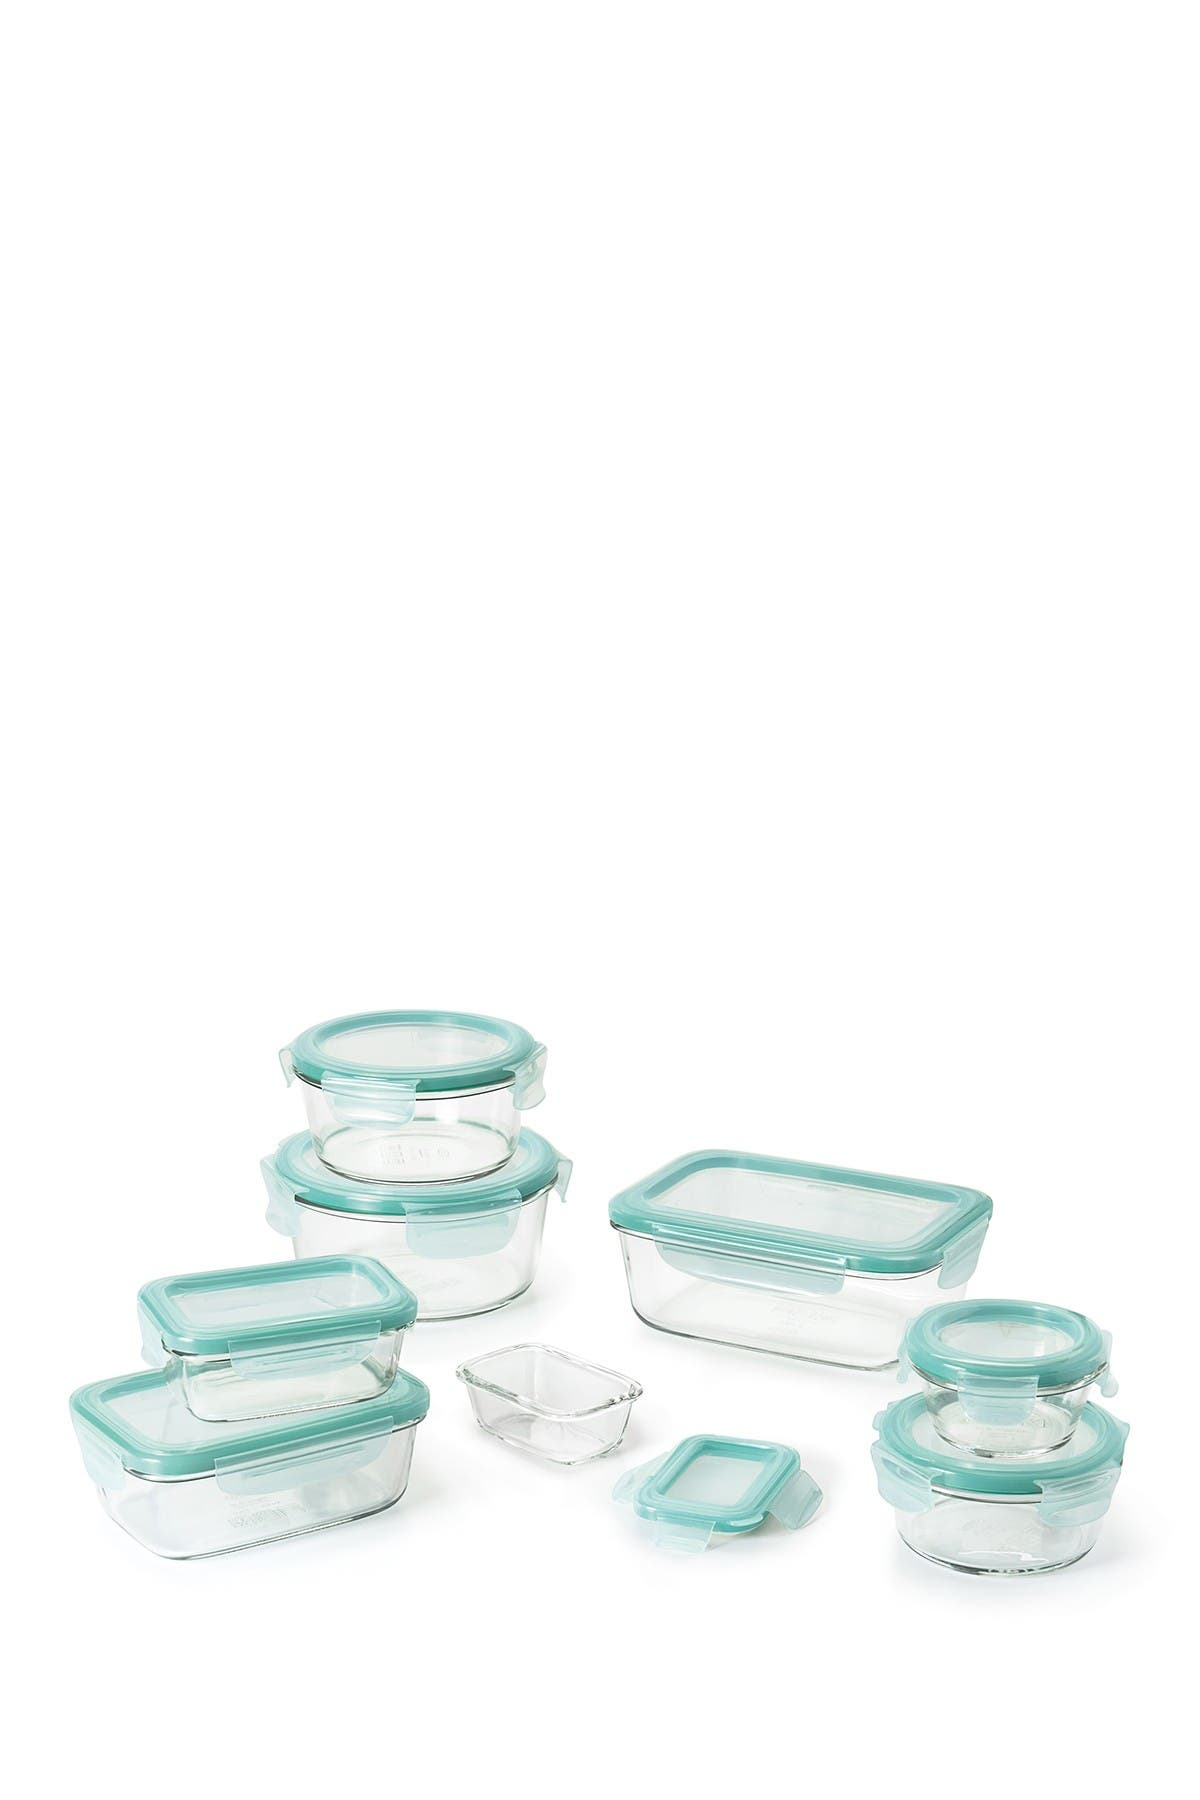 Image of Oxo Good Grips 16-Piece Smart Seal Glass Food Storage Container Set